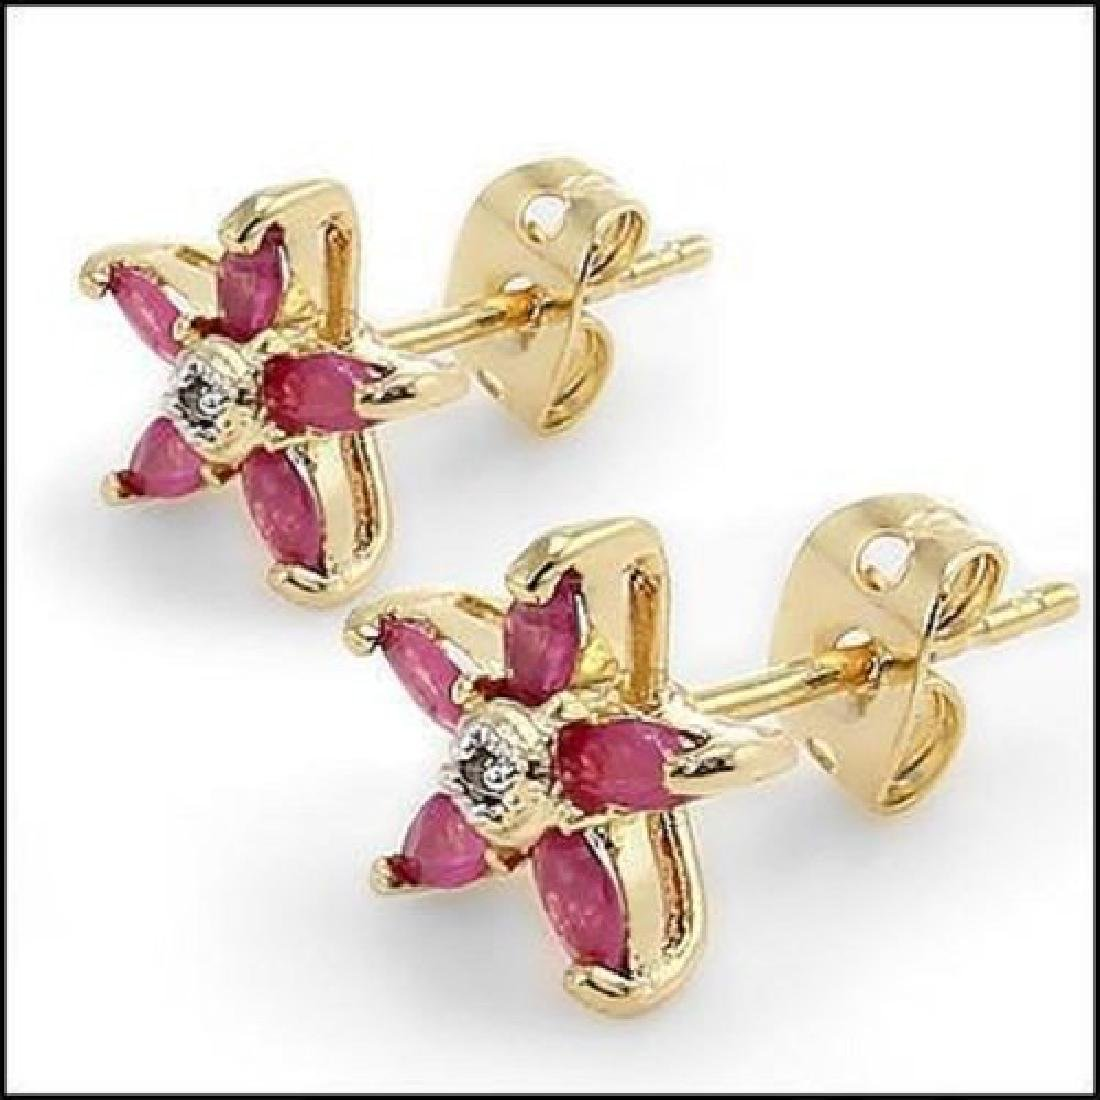 3.22 CT Ruby & Diamond Fine Designer Earrings $865 - 2